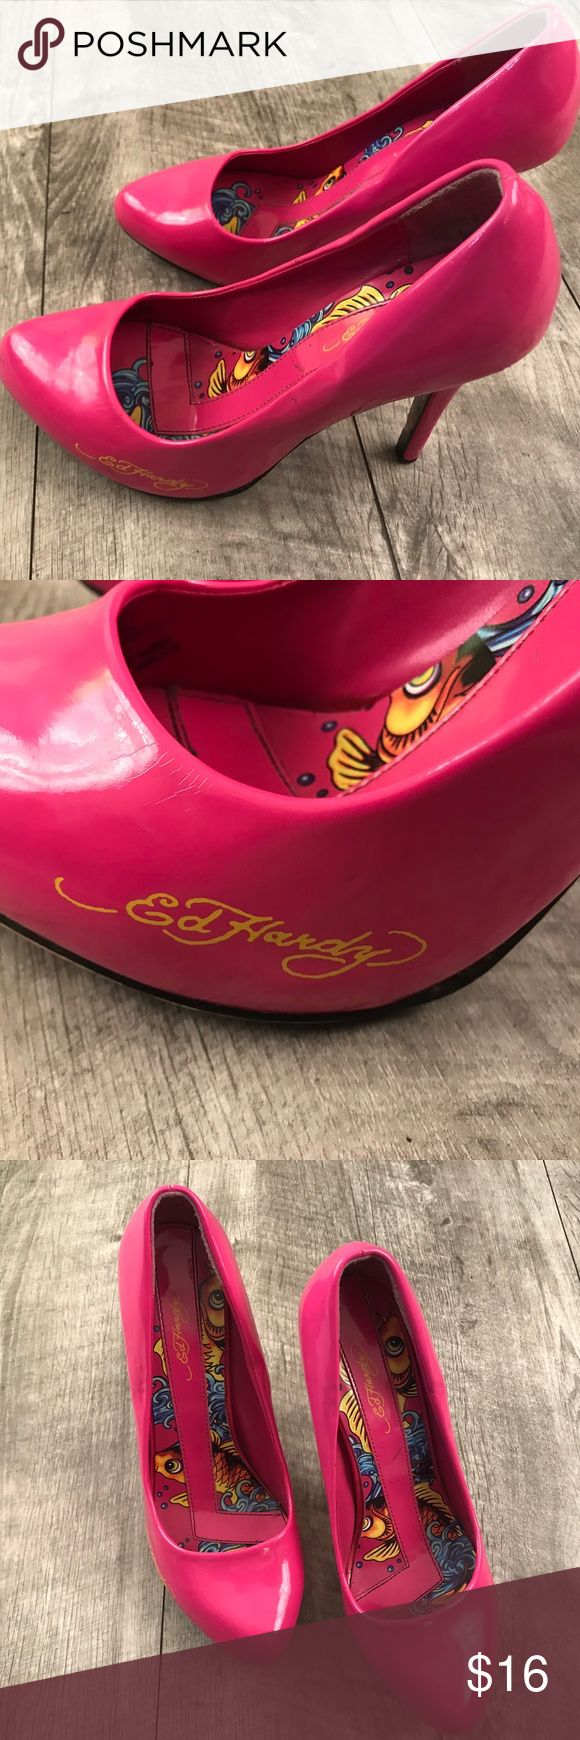 Ed Hardy Pink Pumps Women's 7 Ed Hardy Pink Pumps Women's Size 7 Minor Scuffs and Marks, Nothing Serious. Ed Hardy Shoes Heels